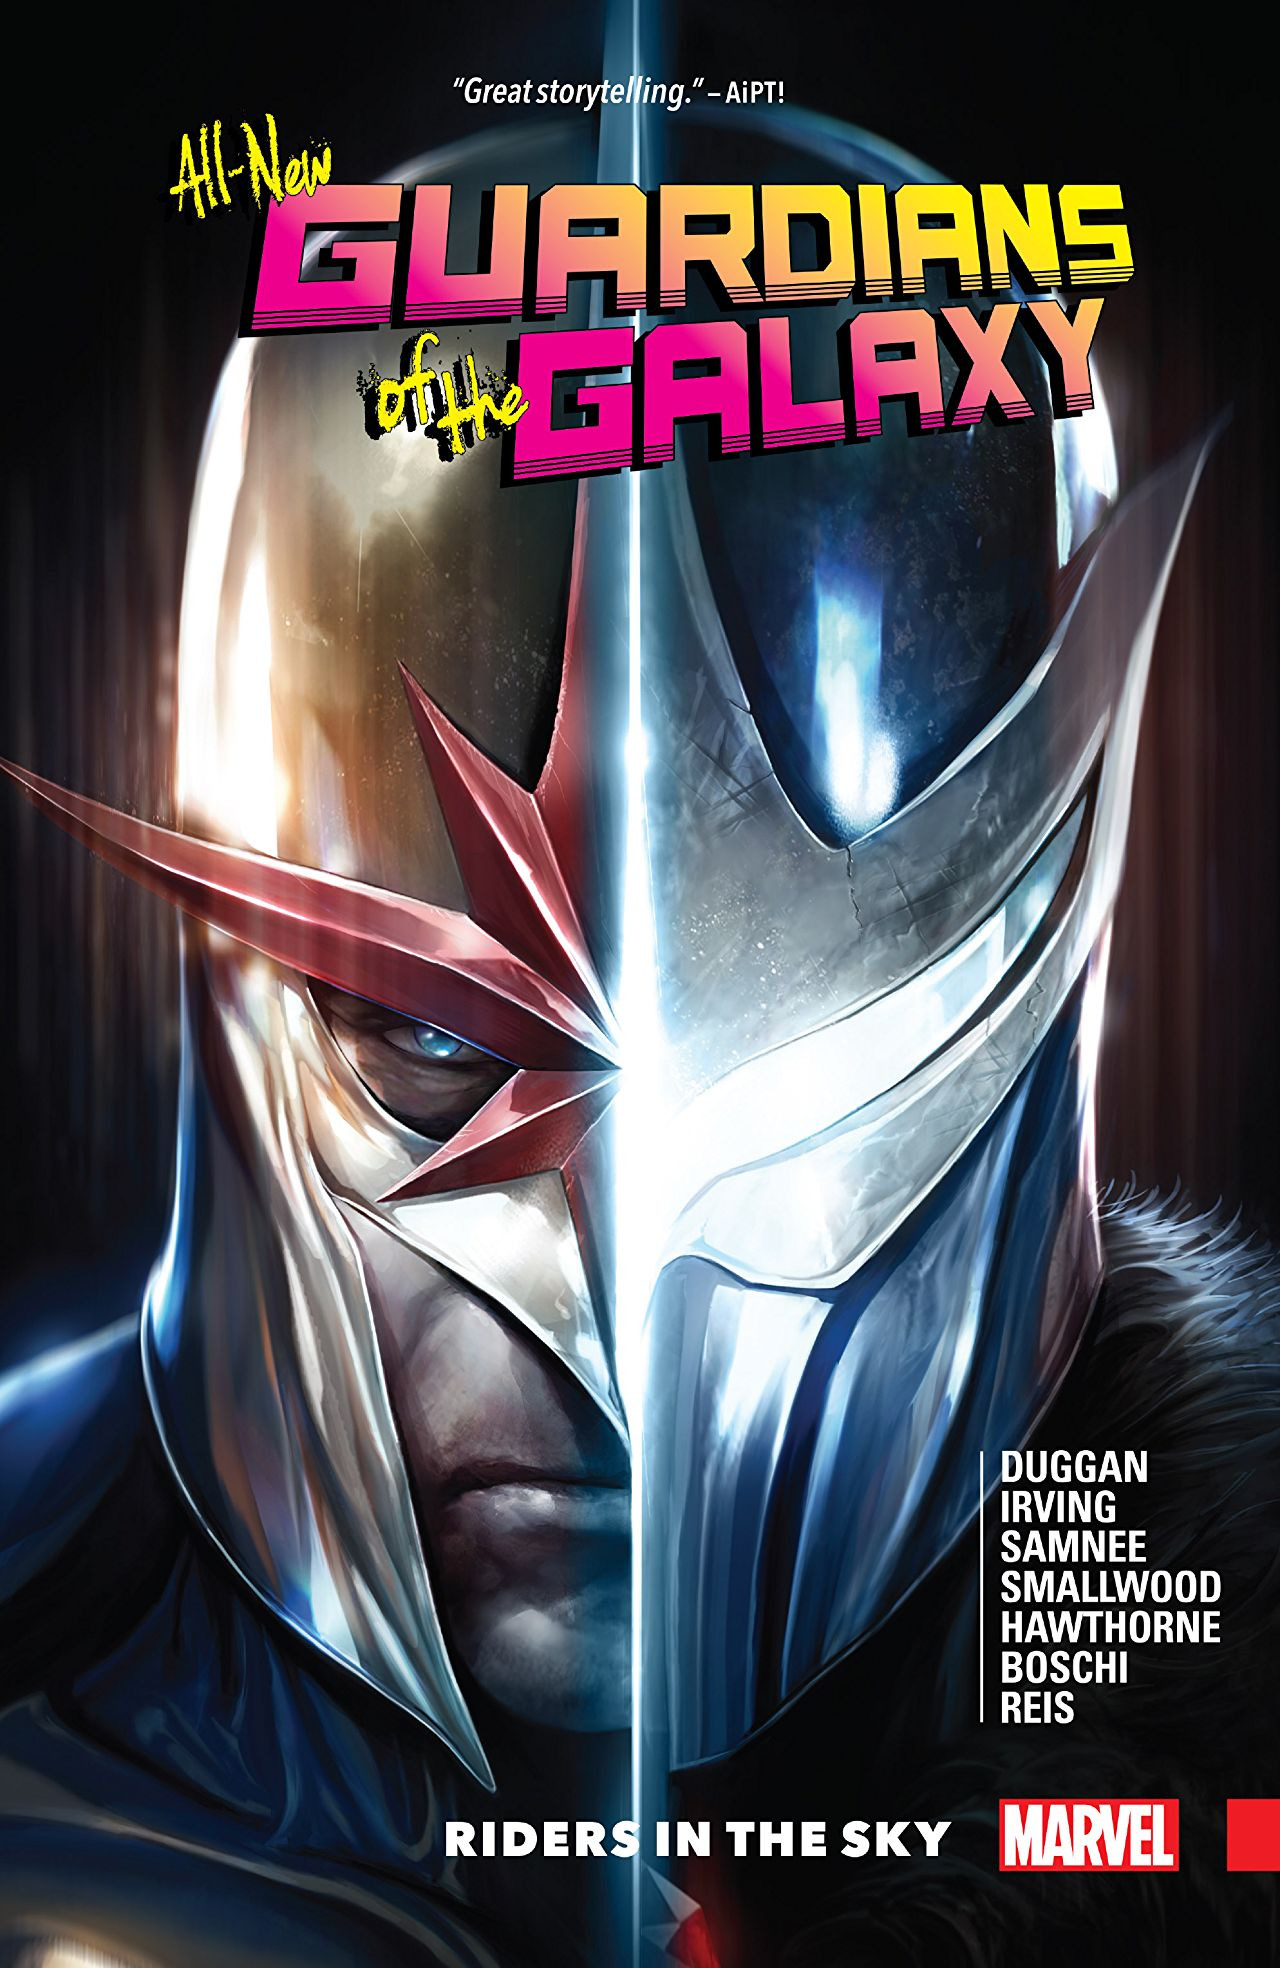 All-New Guardians of the Galaxy TPB Vol 1 2: Riders In The Sky